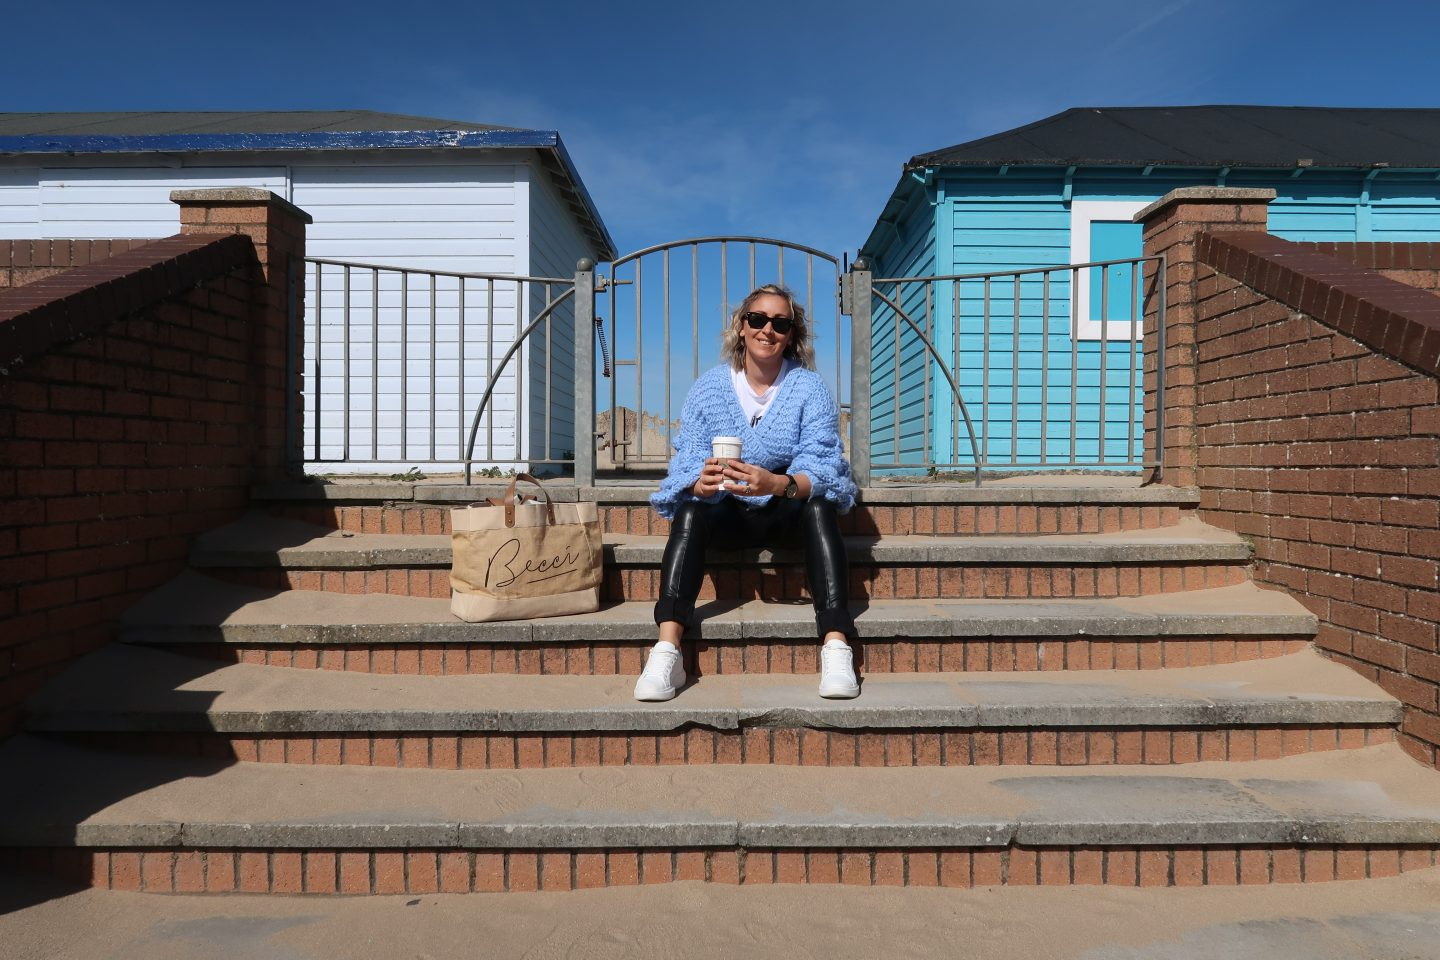 Becci looking very happy sat on a step with a coffee and her bag. Becci is wearing a blue jumper and wearing sunglasses